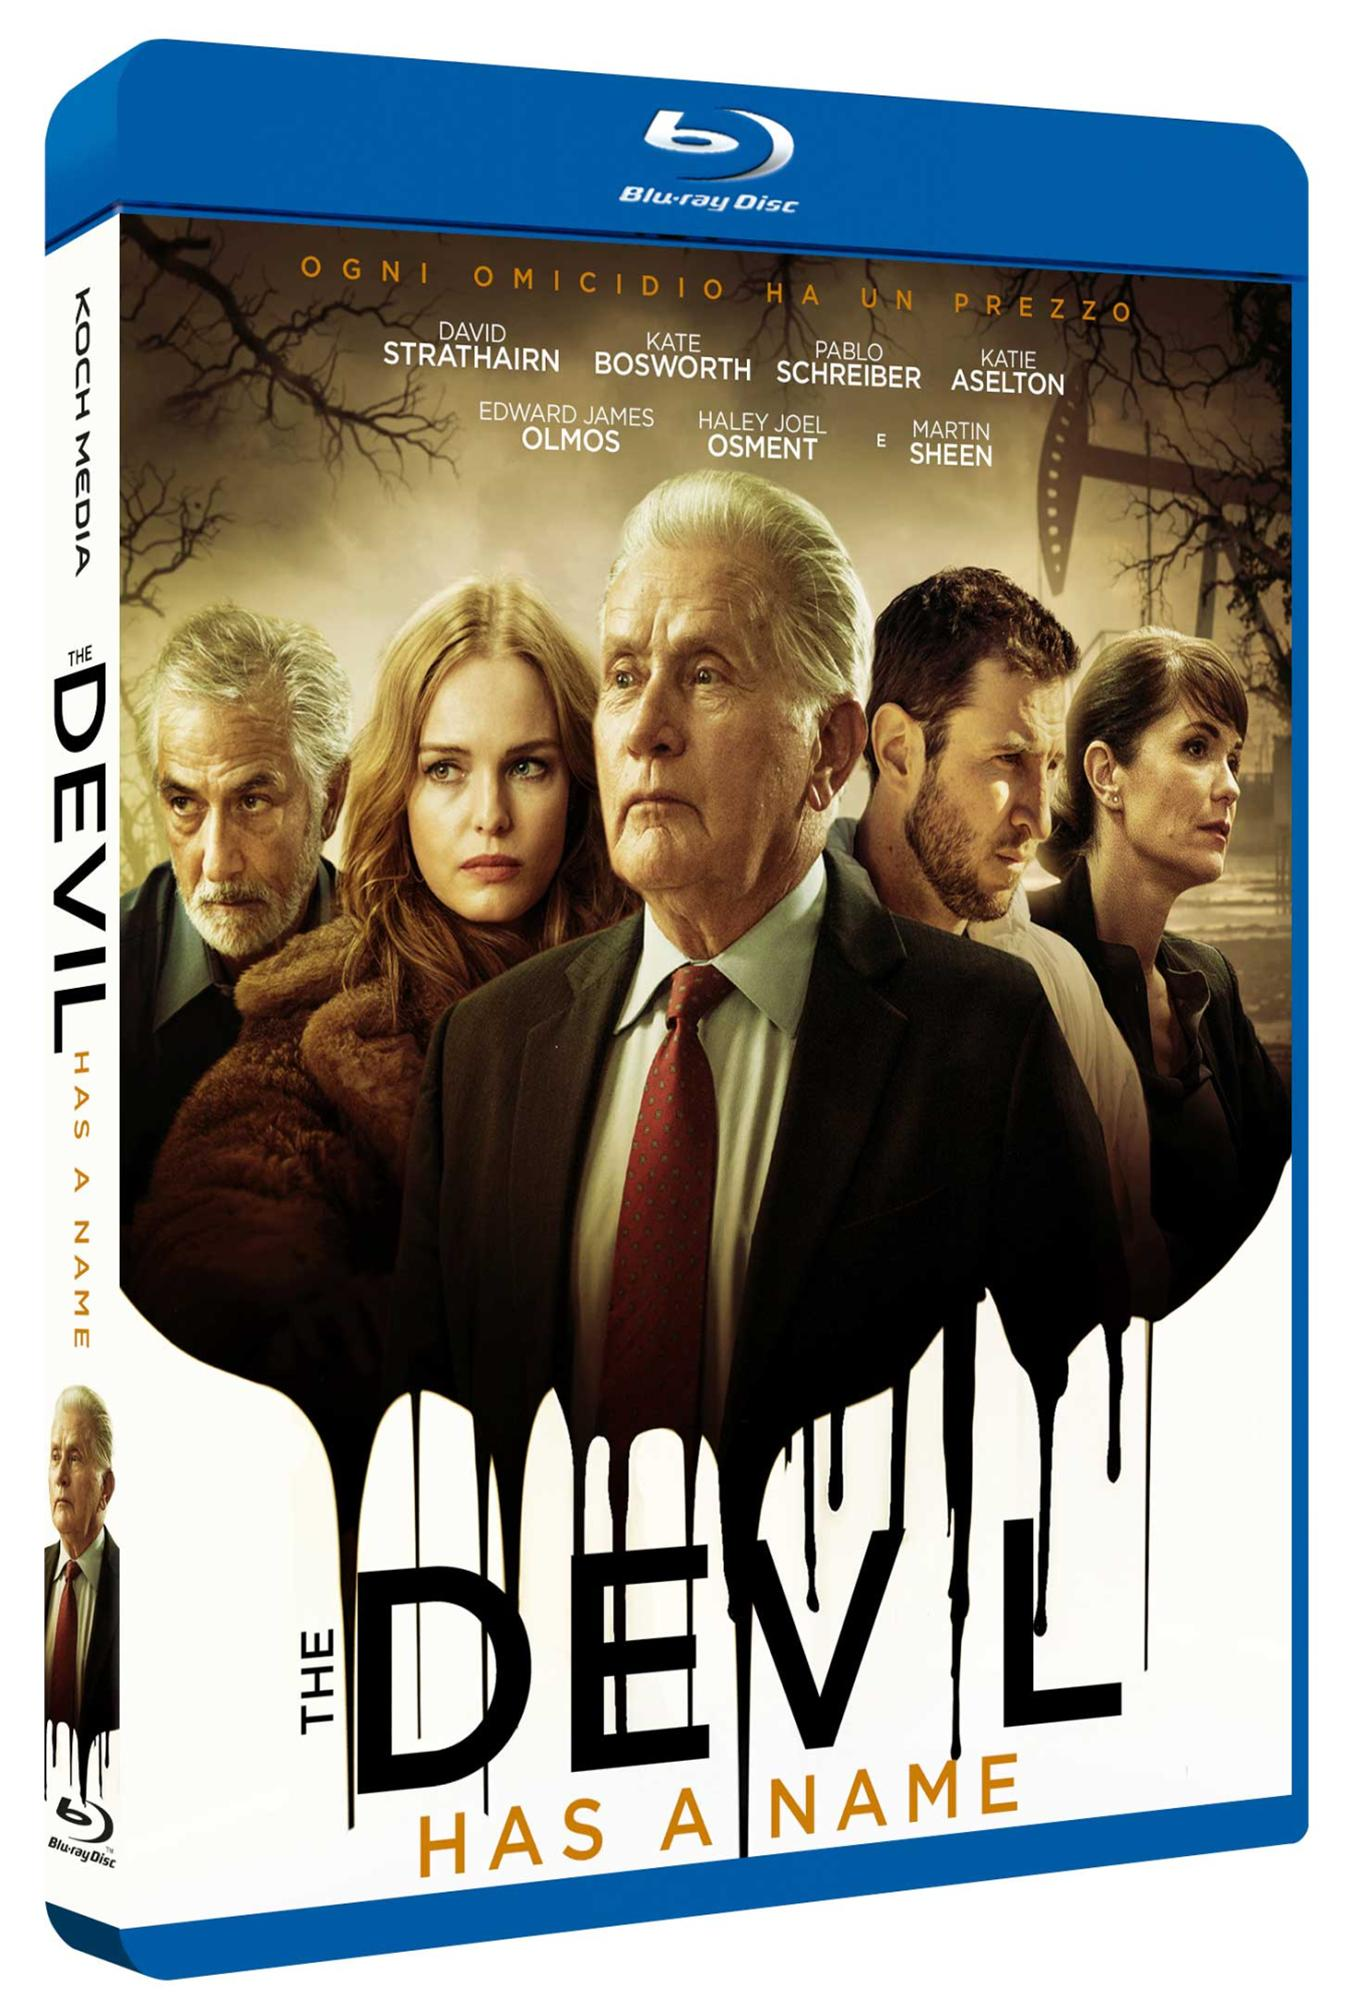 THE DEVIL HAS A NAME - BLU RAY